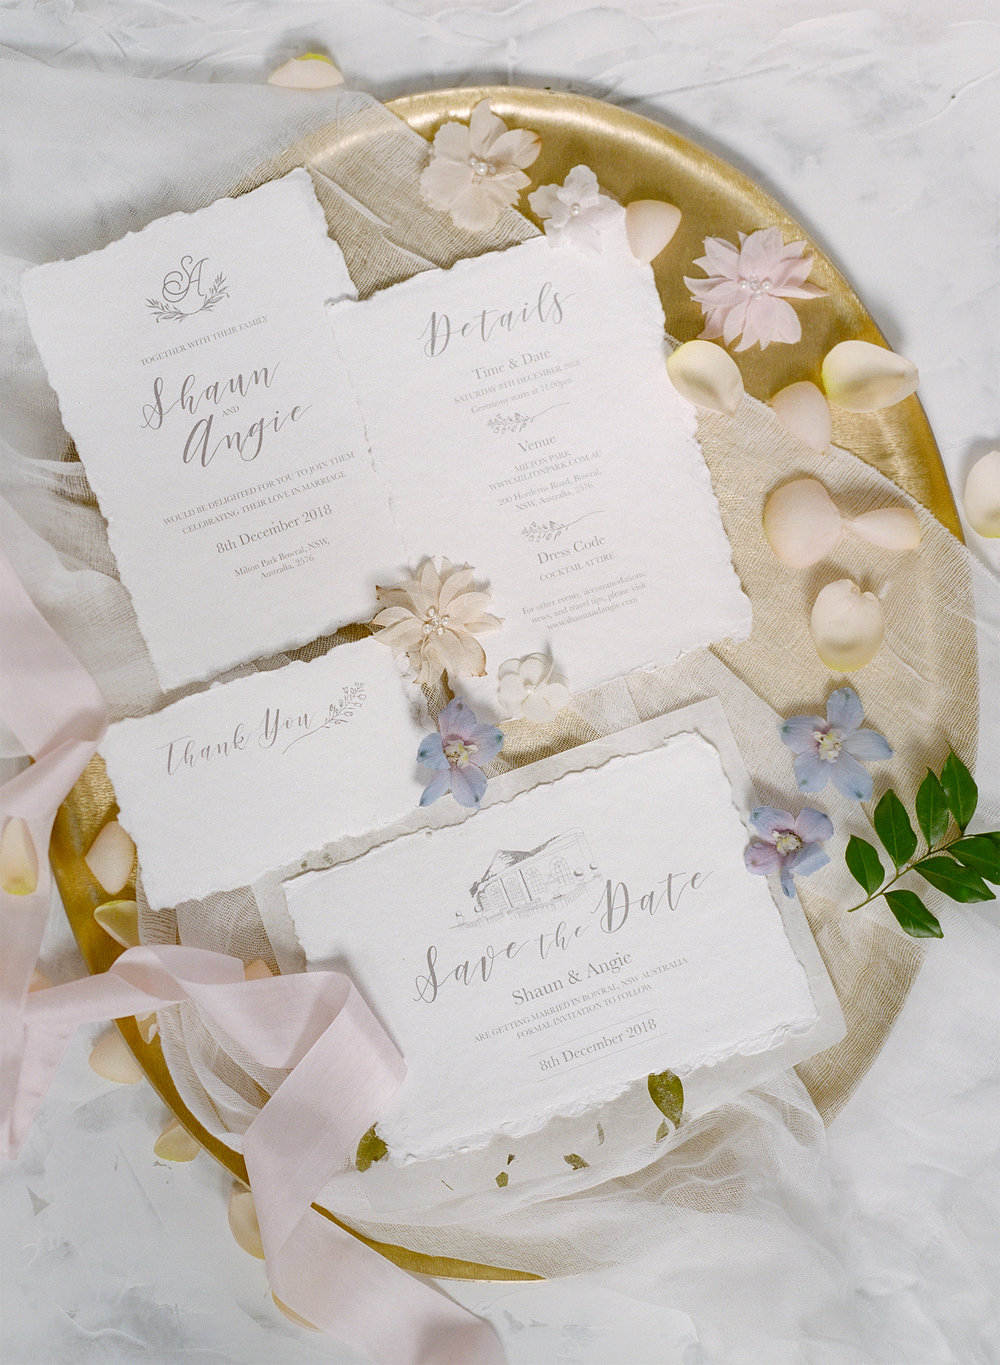 Classic White   The suit featuring handmade paper with an illustration of your wedding venue in a classic white and grey colours. You would also receive a monogram designed specially for you and your significant other half.